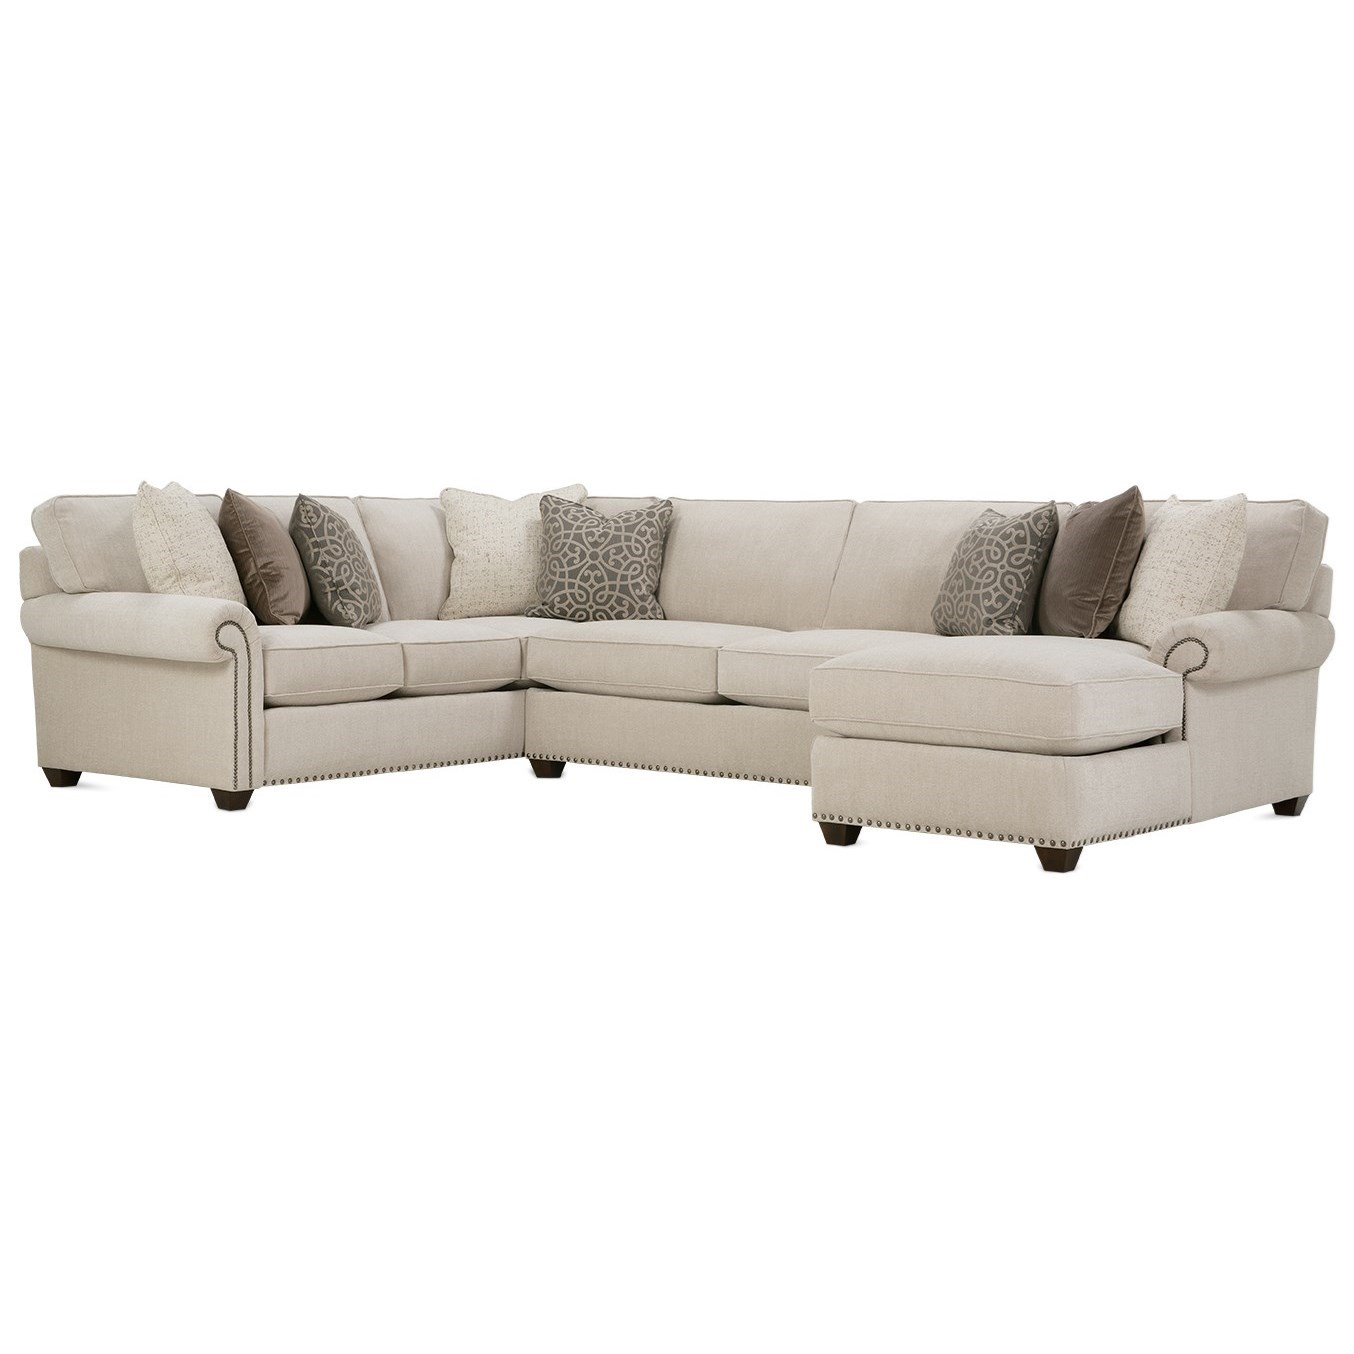 Morgan Traditional Three Piece Sectional Sofa by Rowe at Baer's Furniture